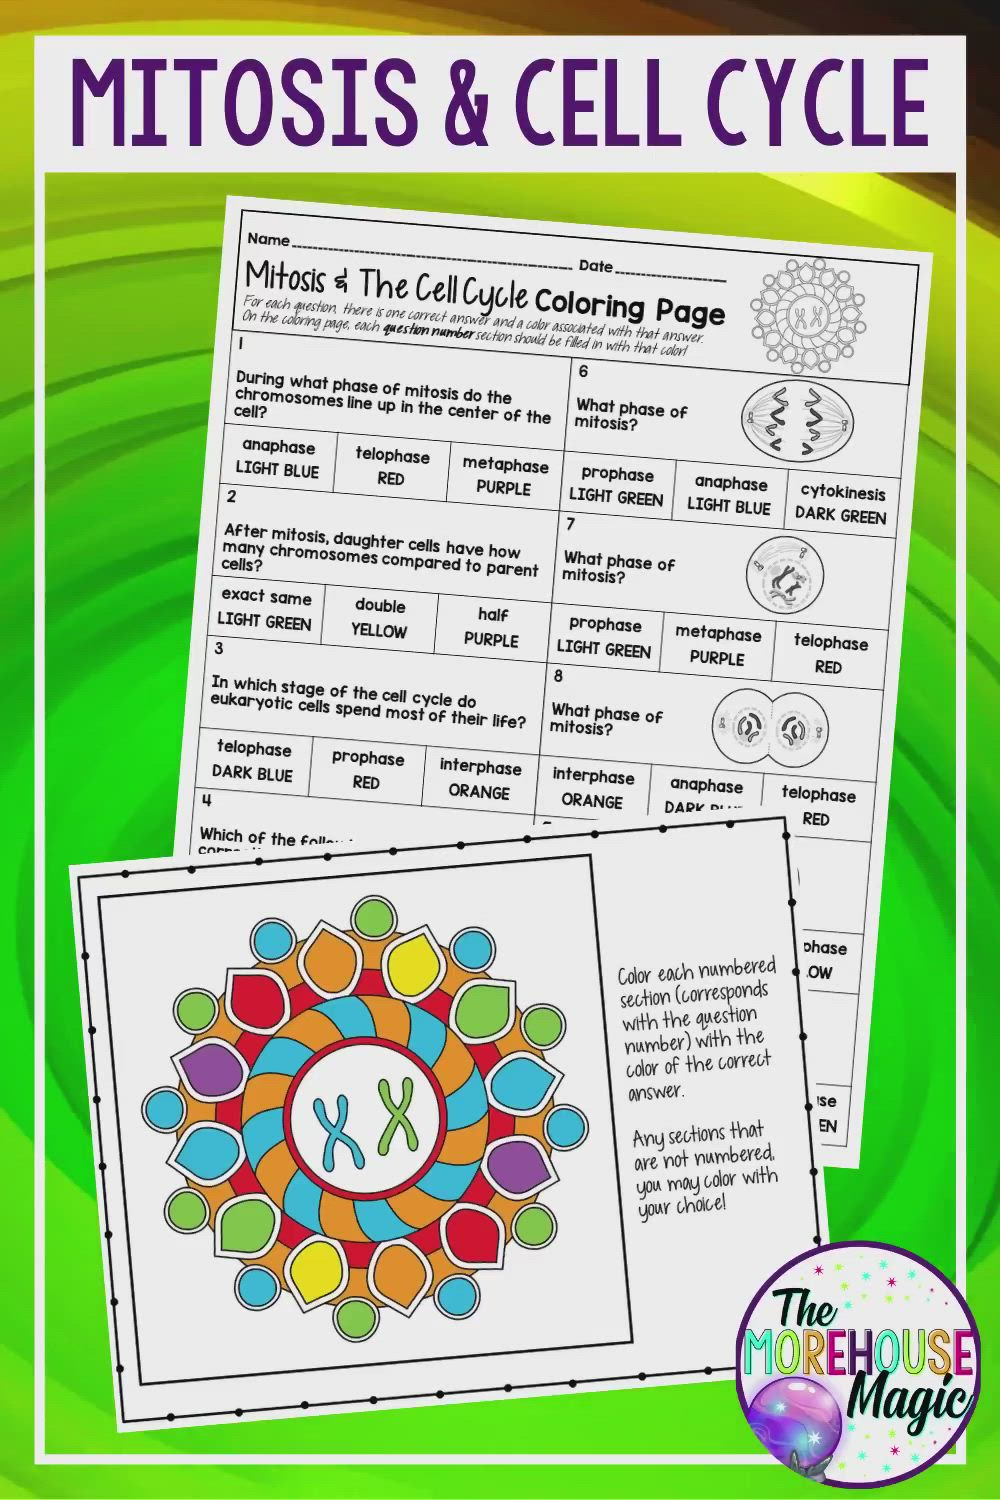 Mitosis And The Cell Cycle Color By Number Science Color By Number Video Video Cell Cycle Science Cells Middle School Science Resources [ 1500 x 1000 Pixel ]